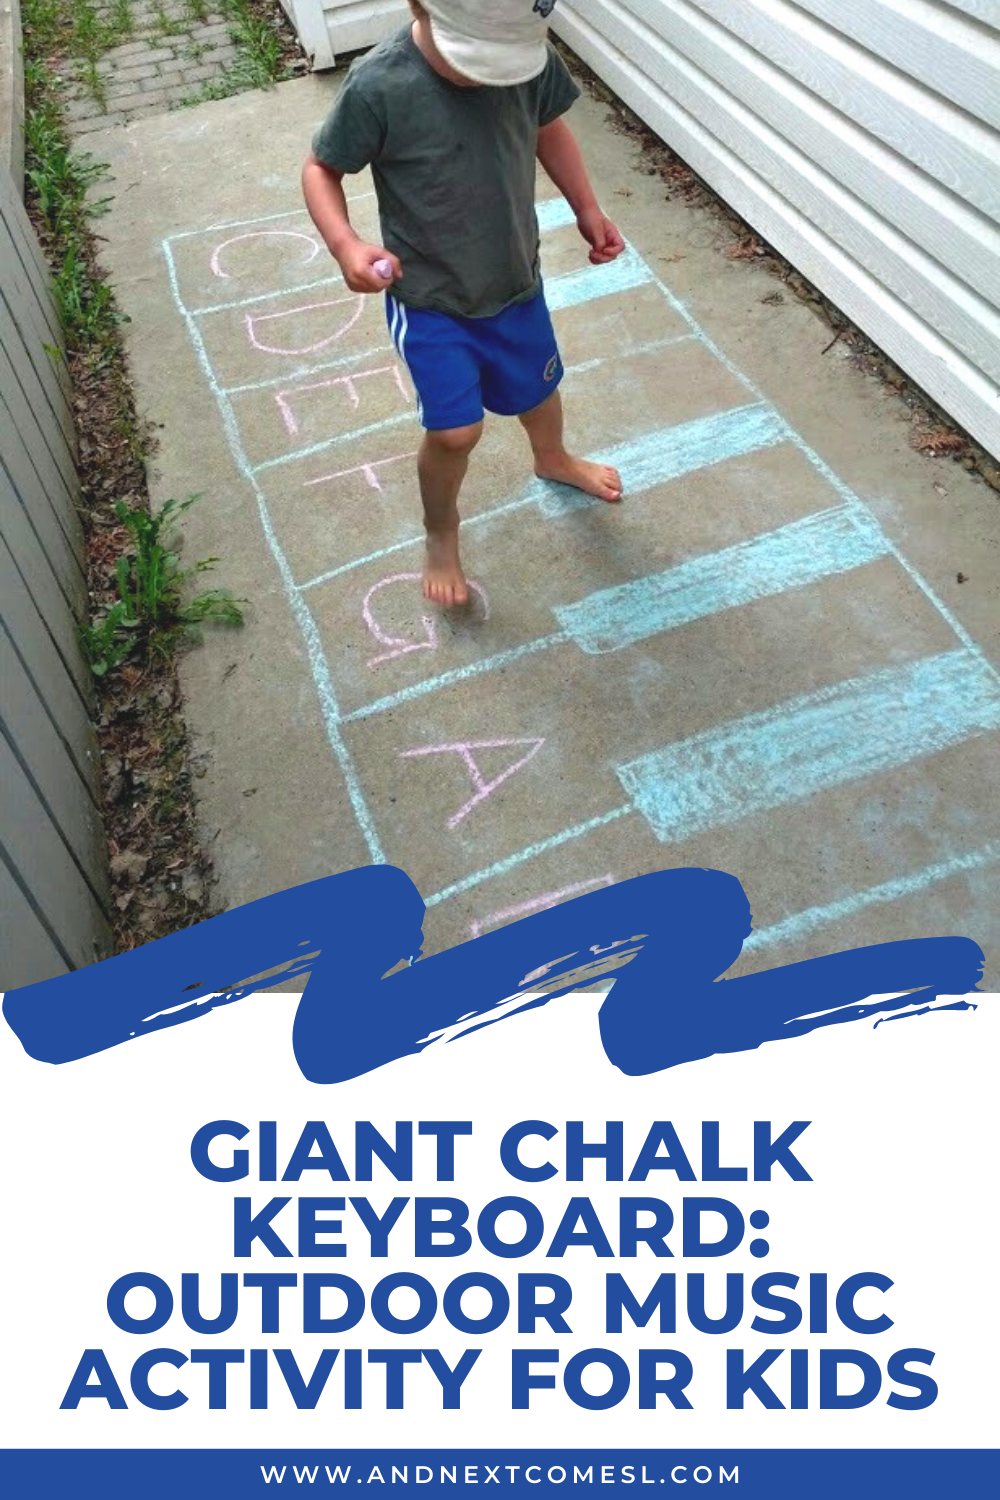 This giant chalk keyboard outdoor music activity for kids is a great music and movement activity for toddlers and preschoolers and a great way to work on music theory concepts with older kids